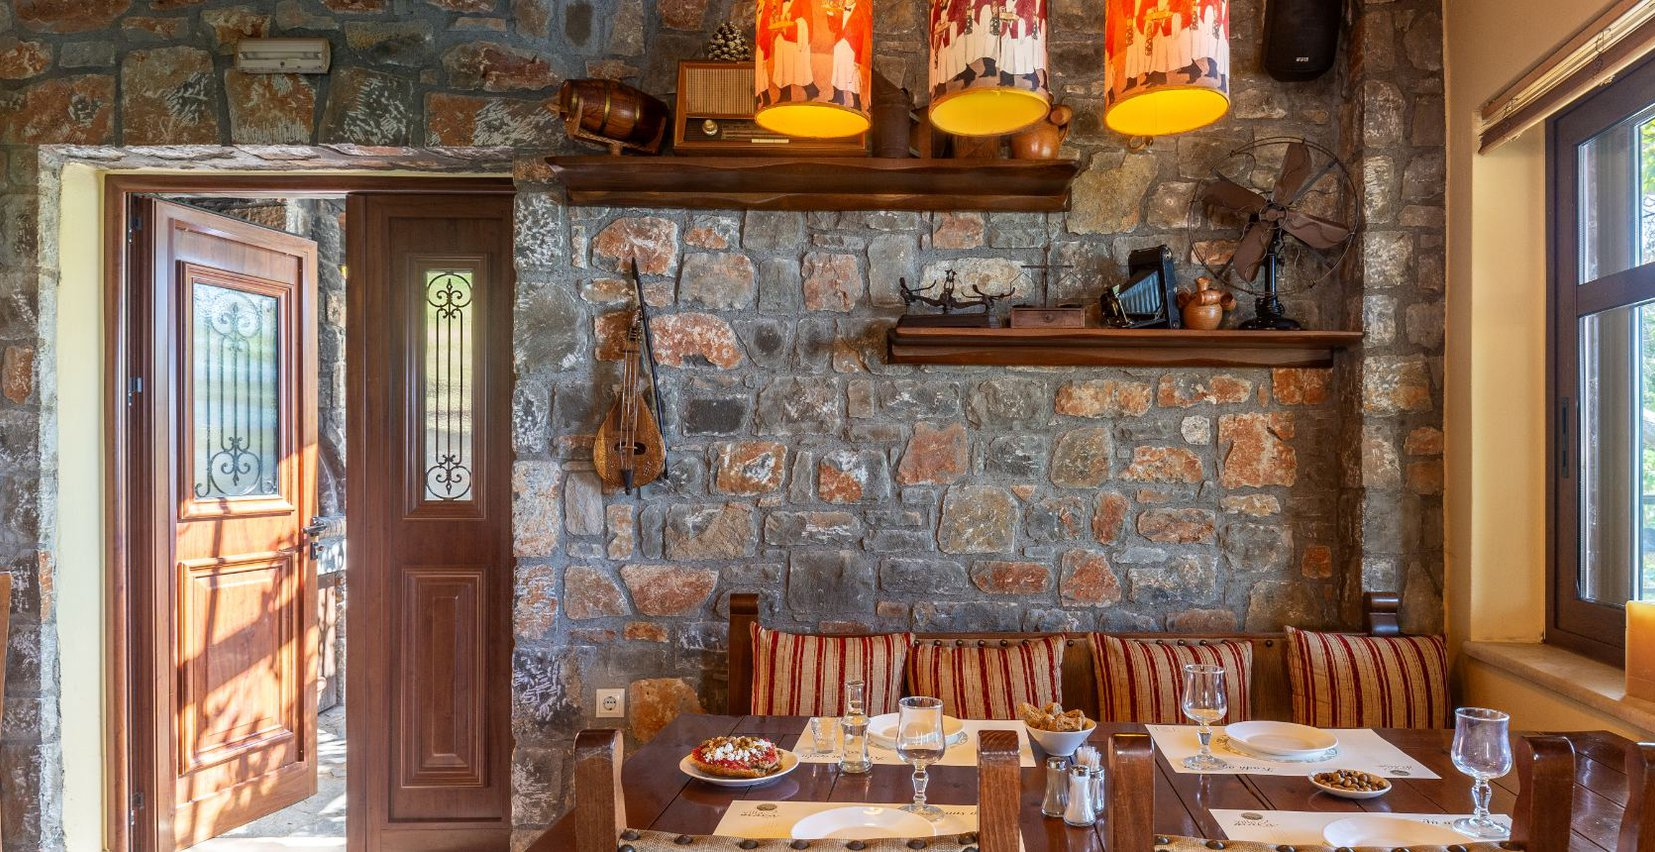 The interior of the restaurant, with the stone walls, decorations, dinner table with plates and food and the sofa